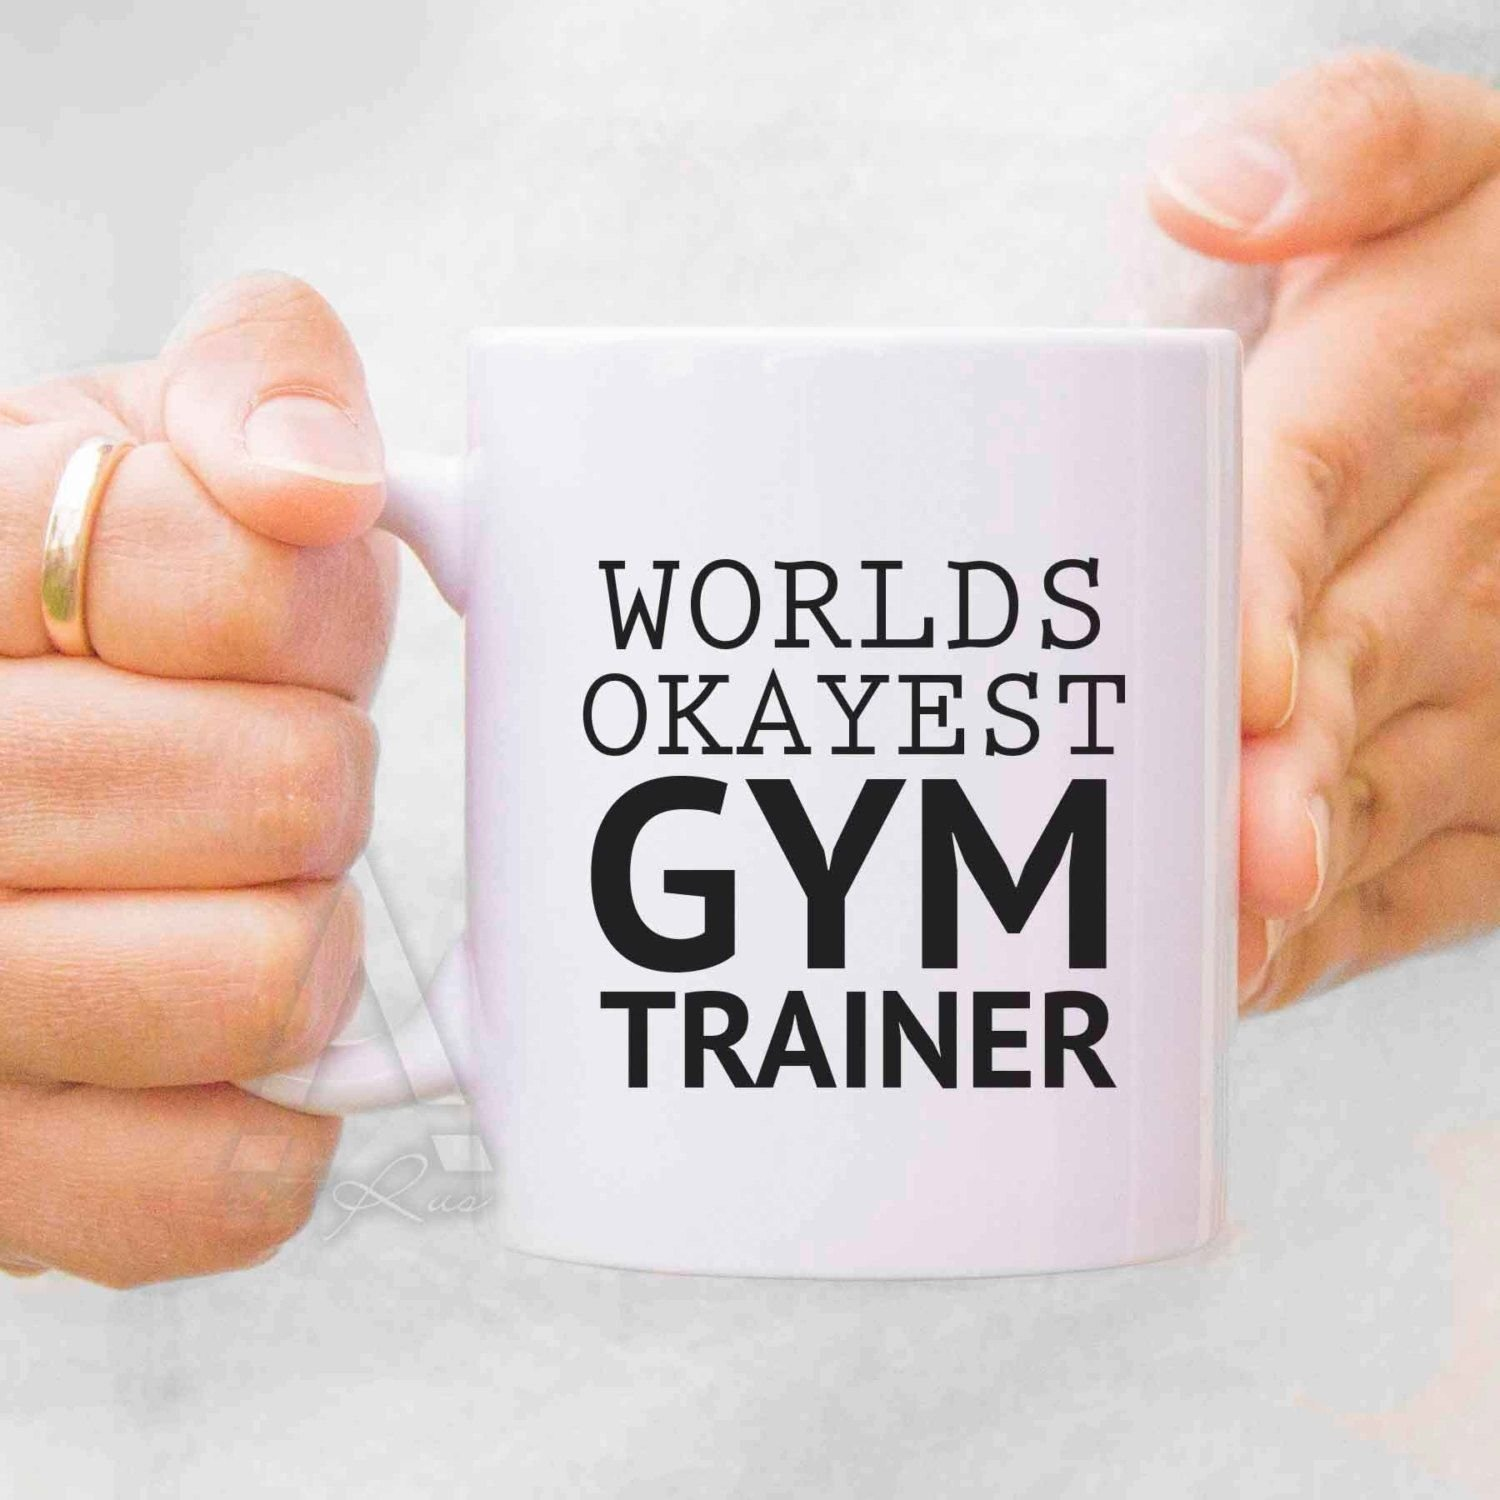 10 Lovable Gift Ideas For Personal Trainers gym teacher gifts fitness gifts christmas gifts worlds okayest 2020